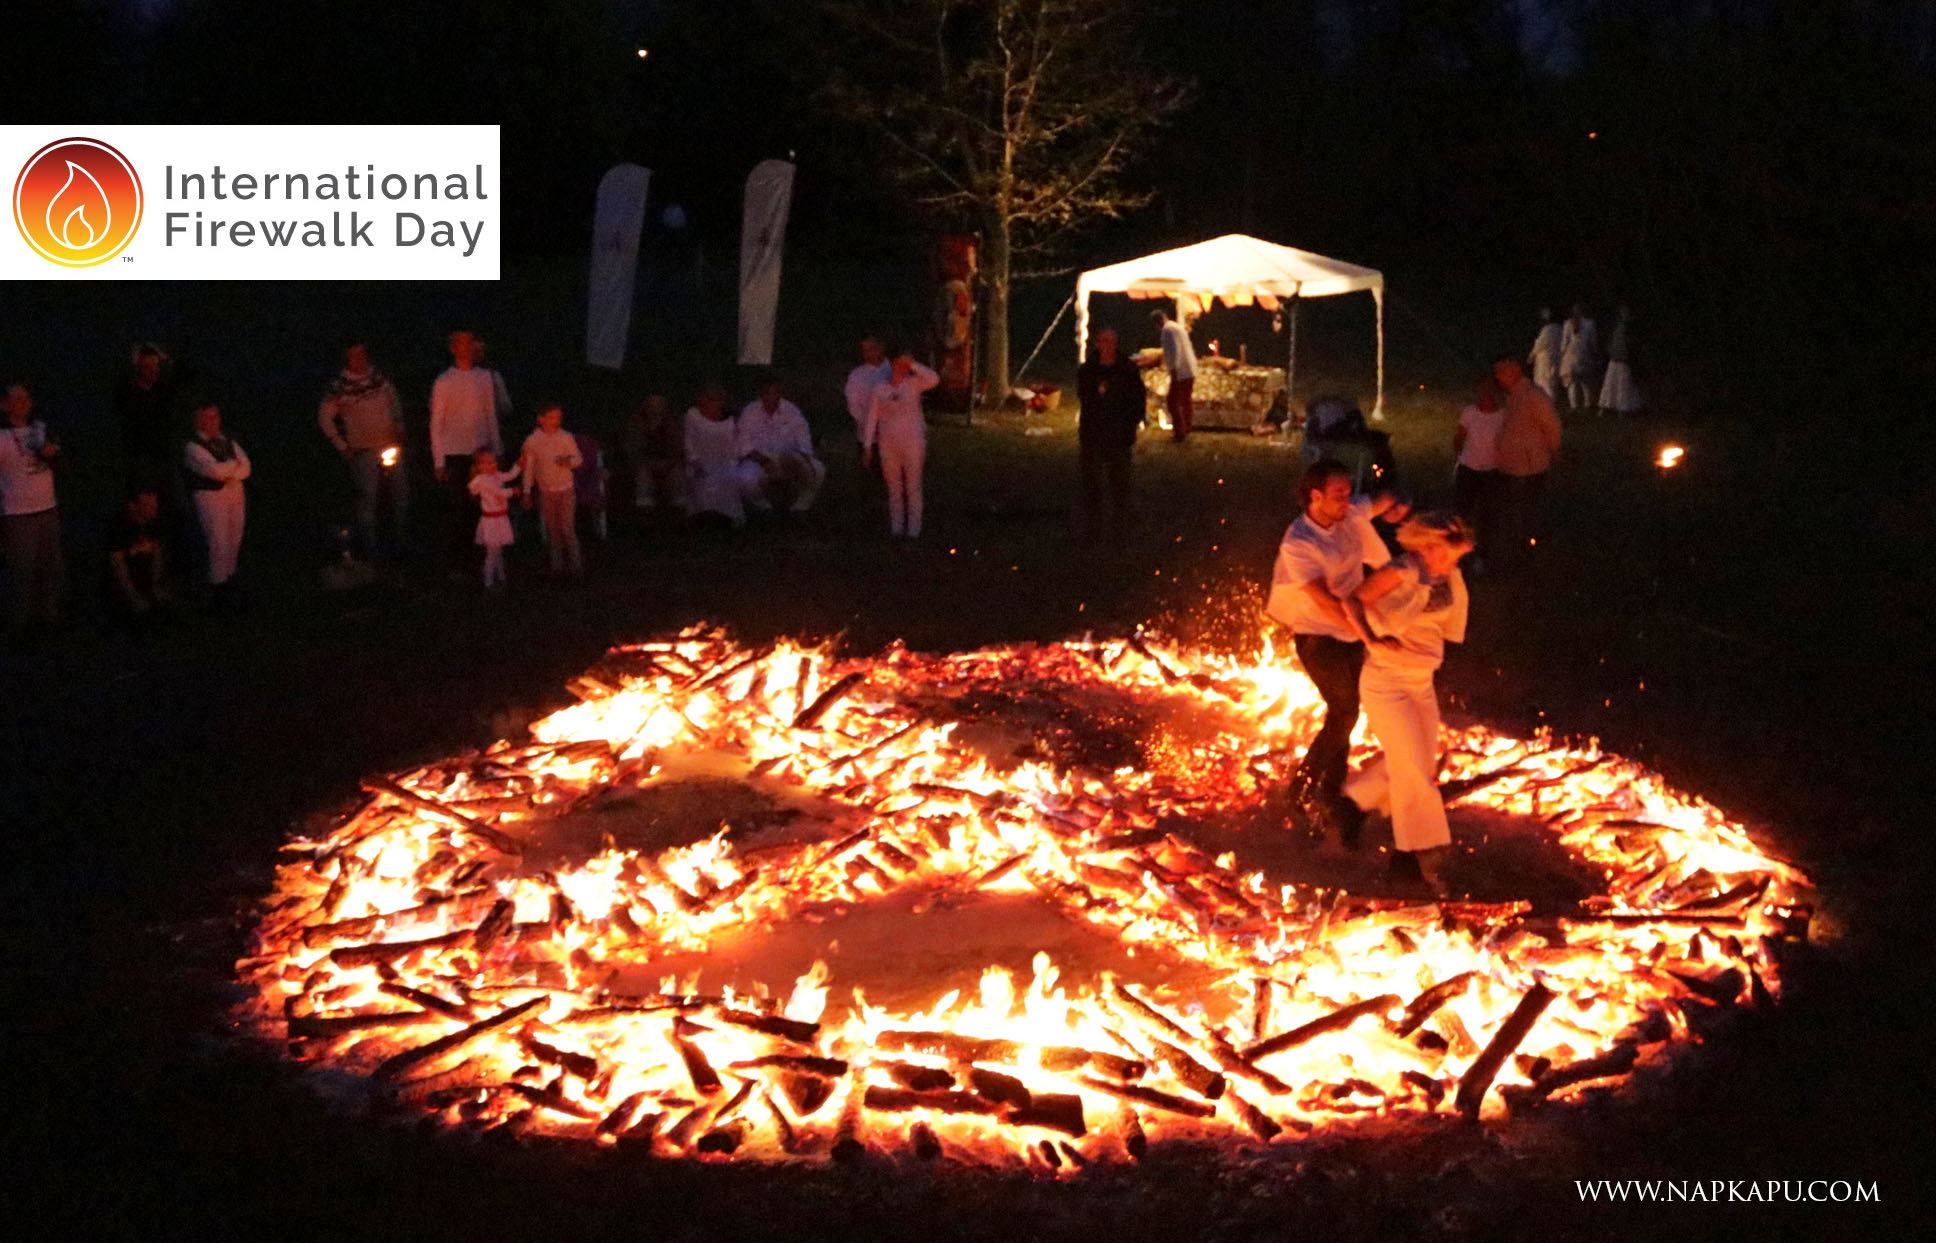 firewalk day